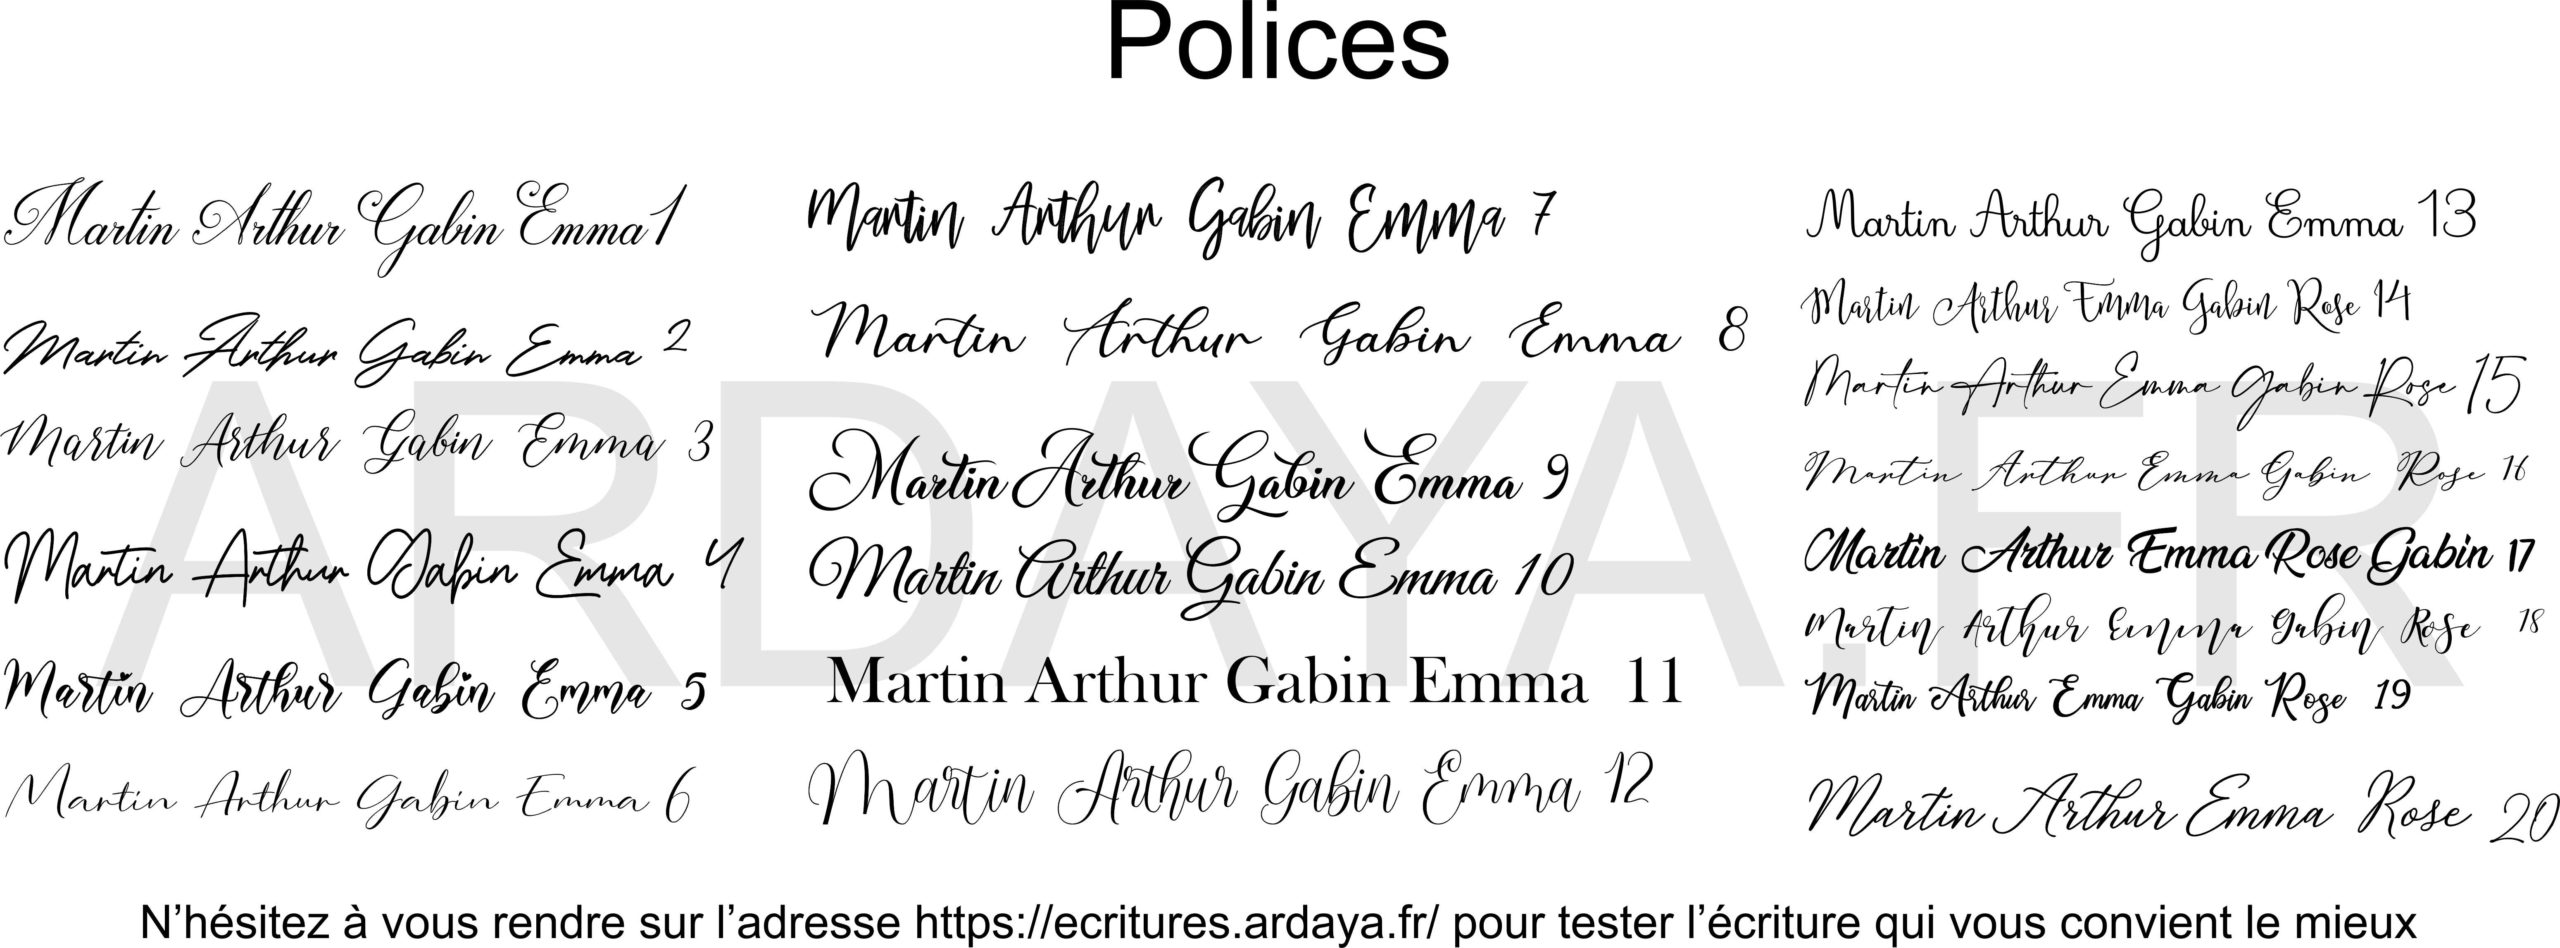 polices new